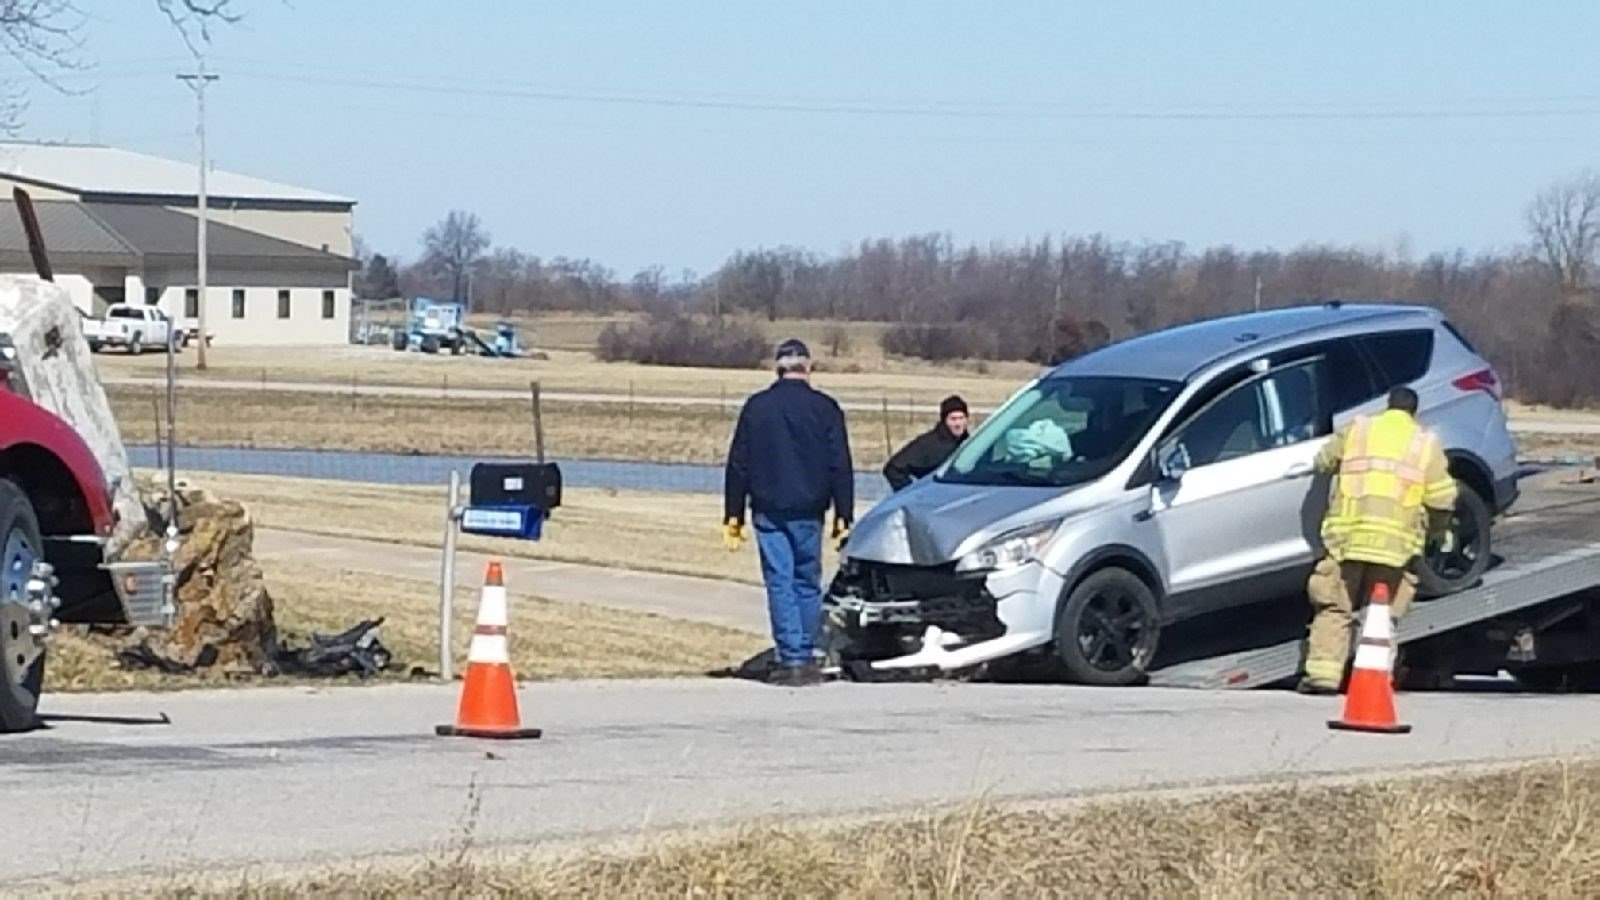 Accident near Hannibal airport